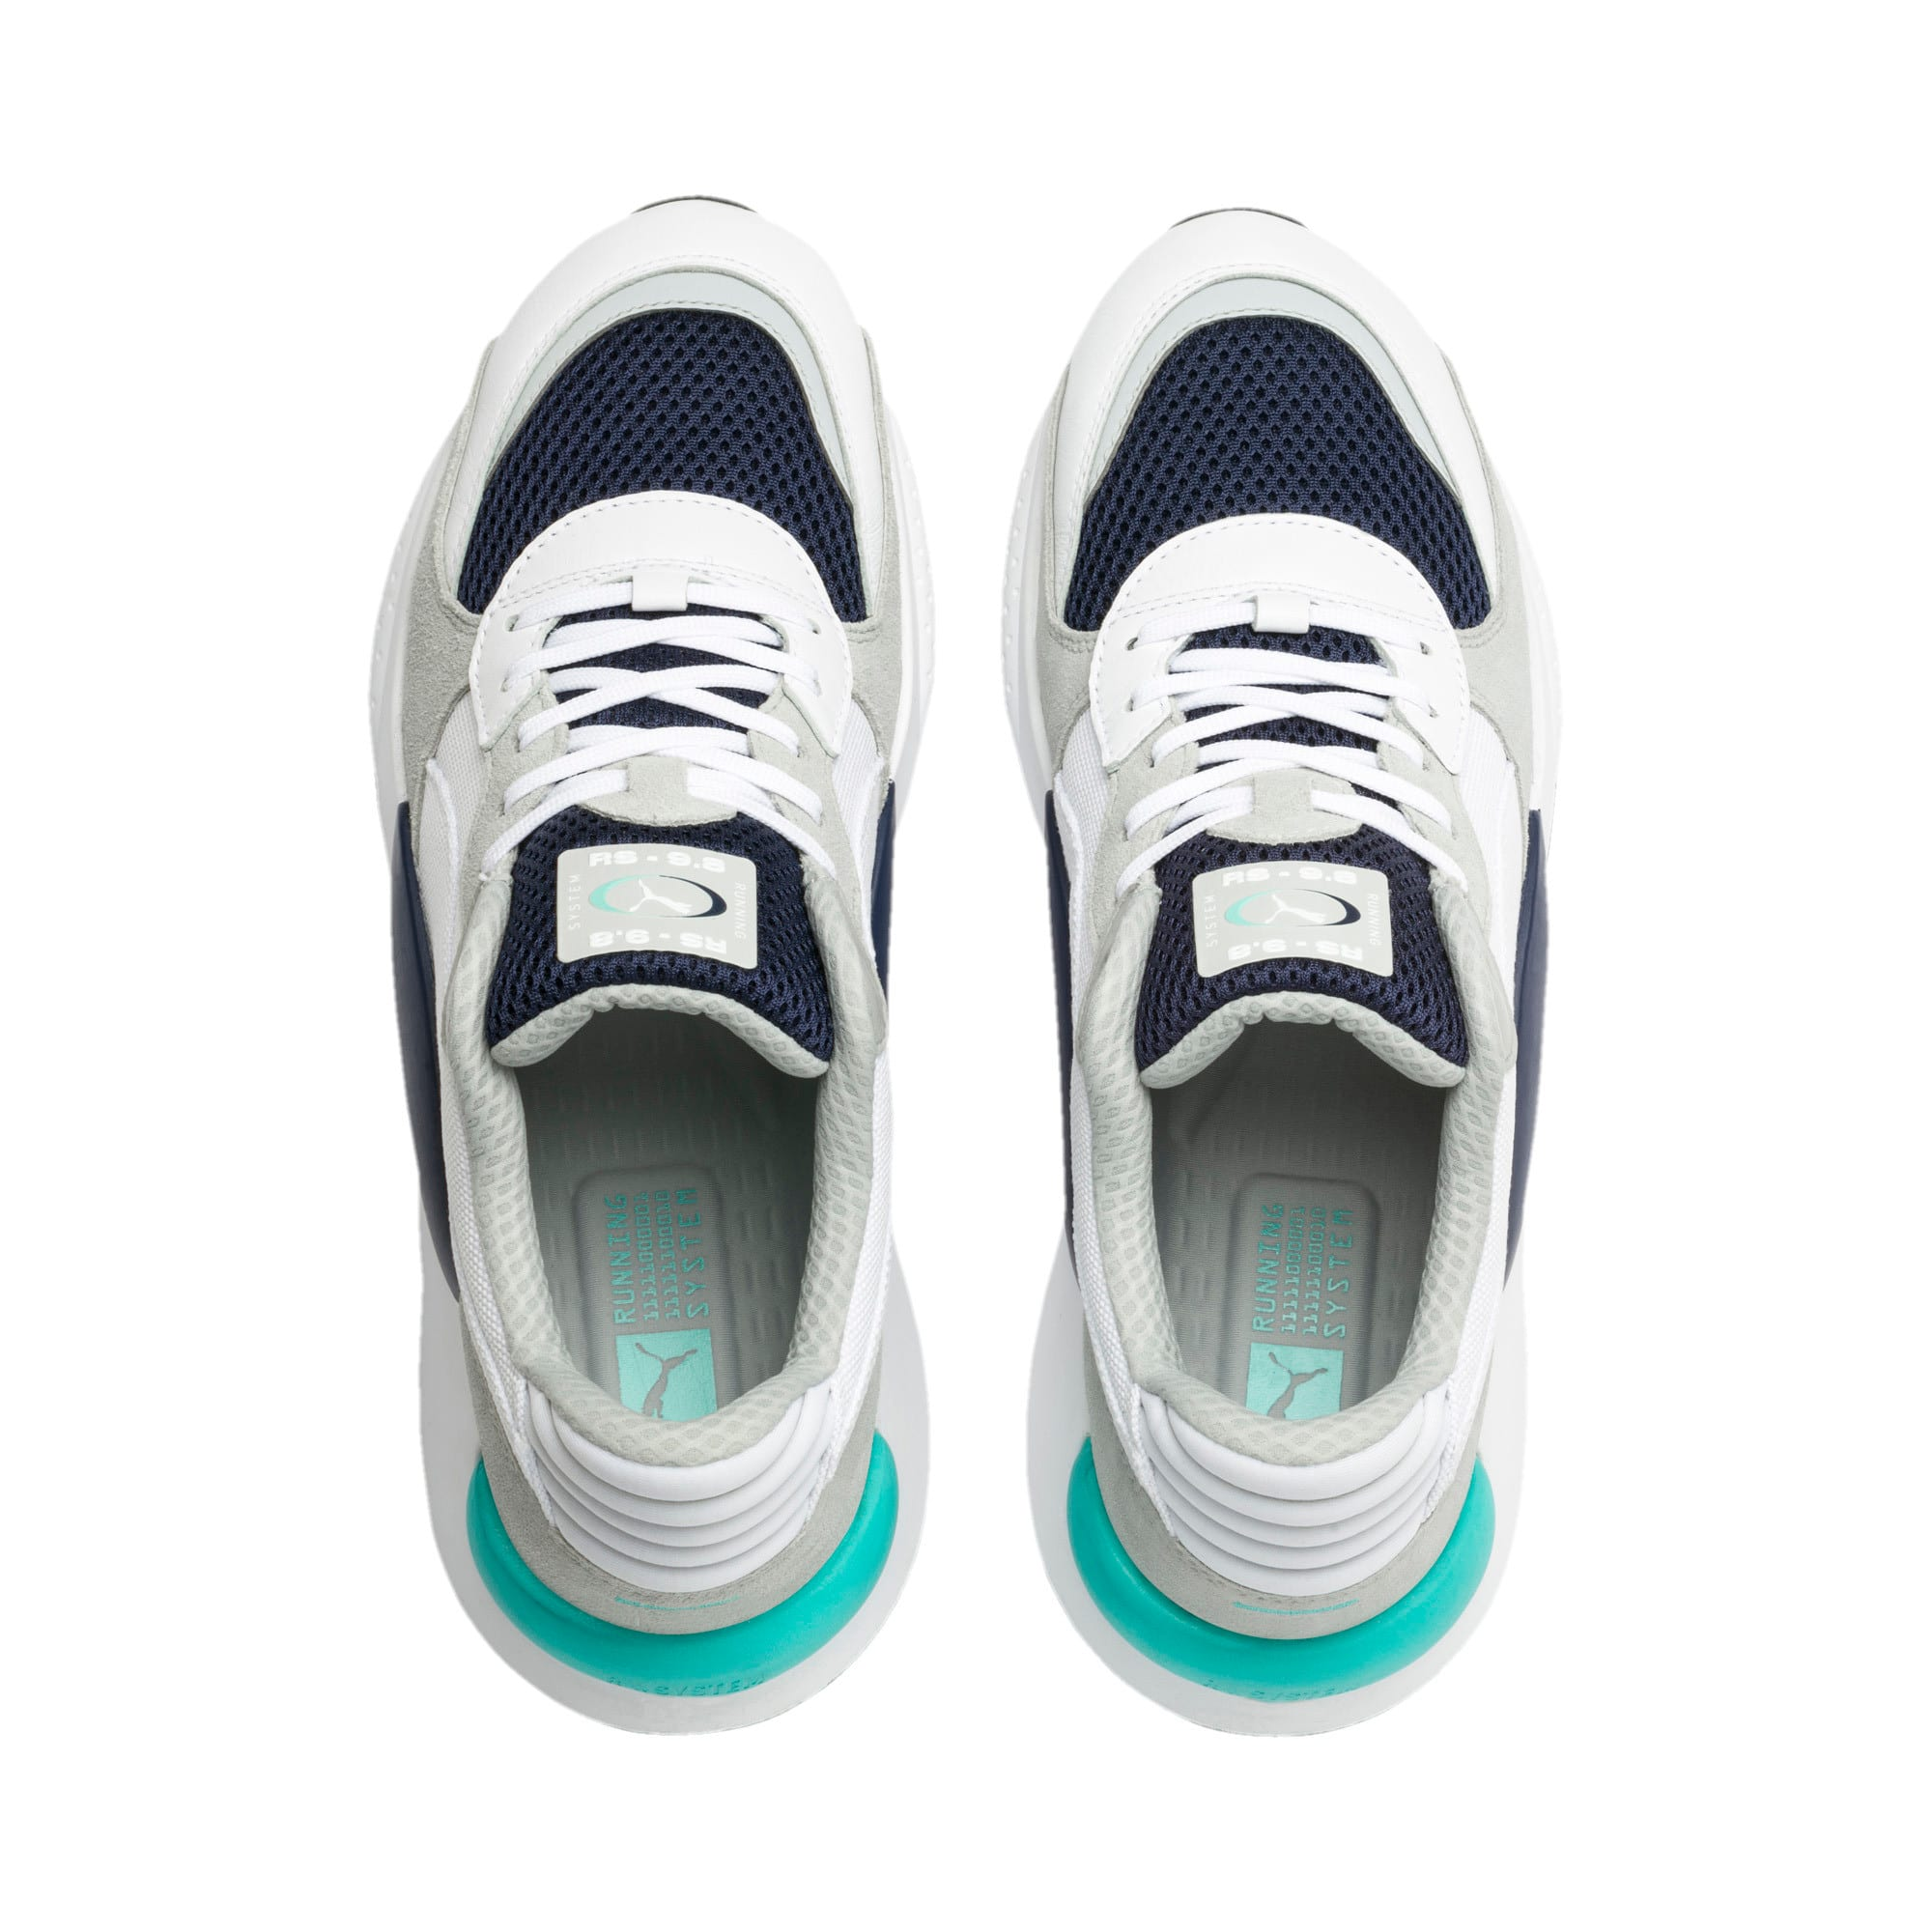 RS 9.8 Cosmic Trainers, Puma White-Peacoat, large